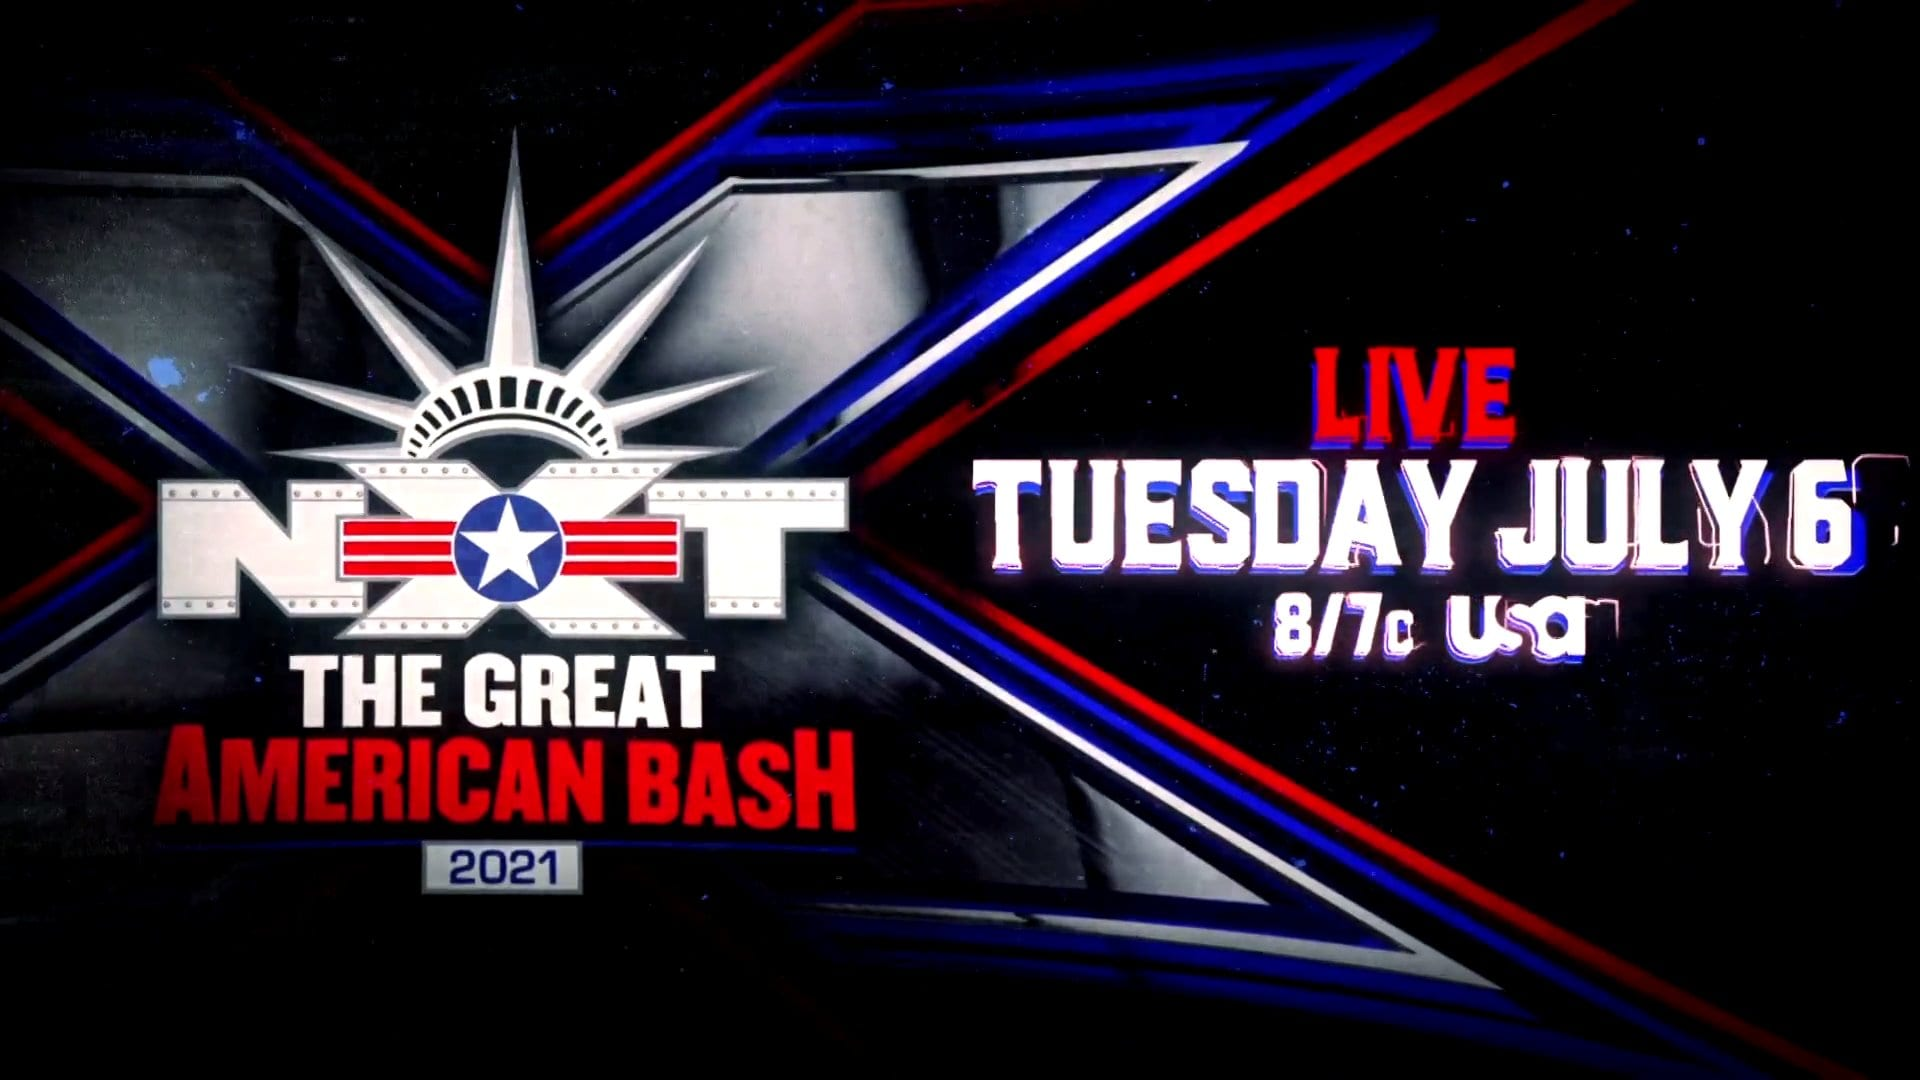 Title Match With Stipulation Set For WWE NXT Great American Bash